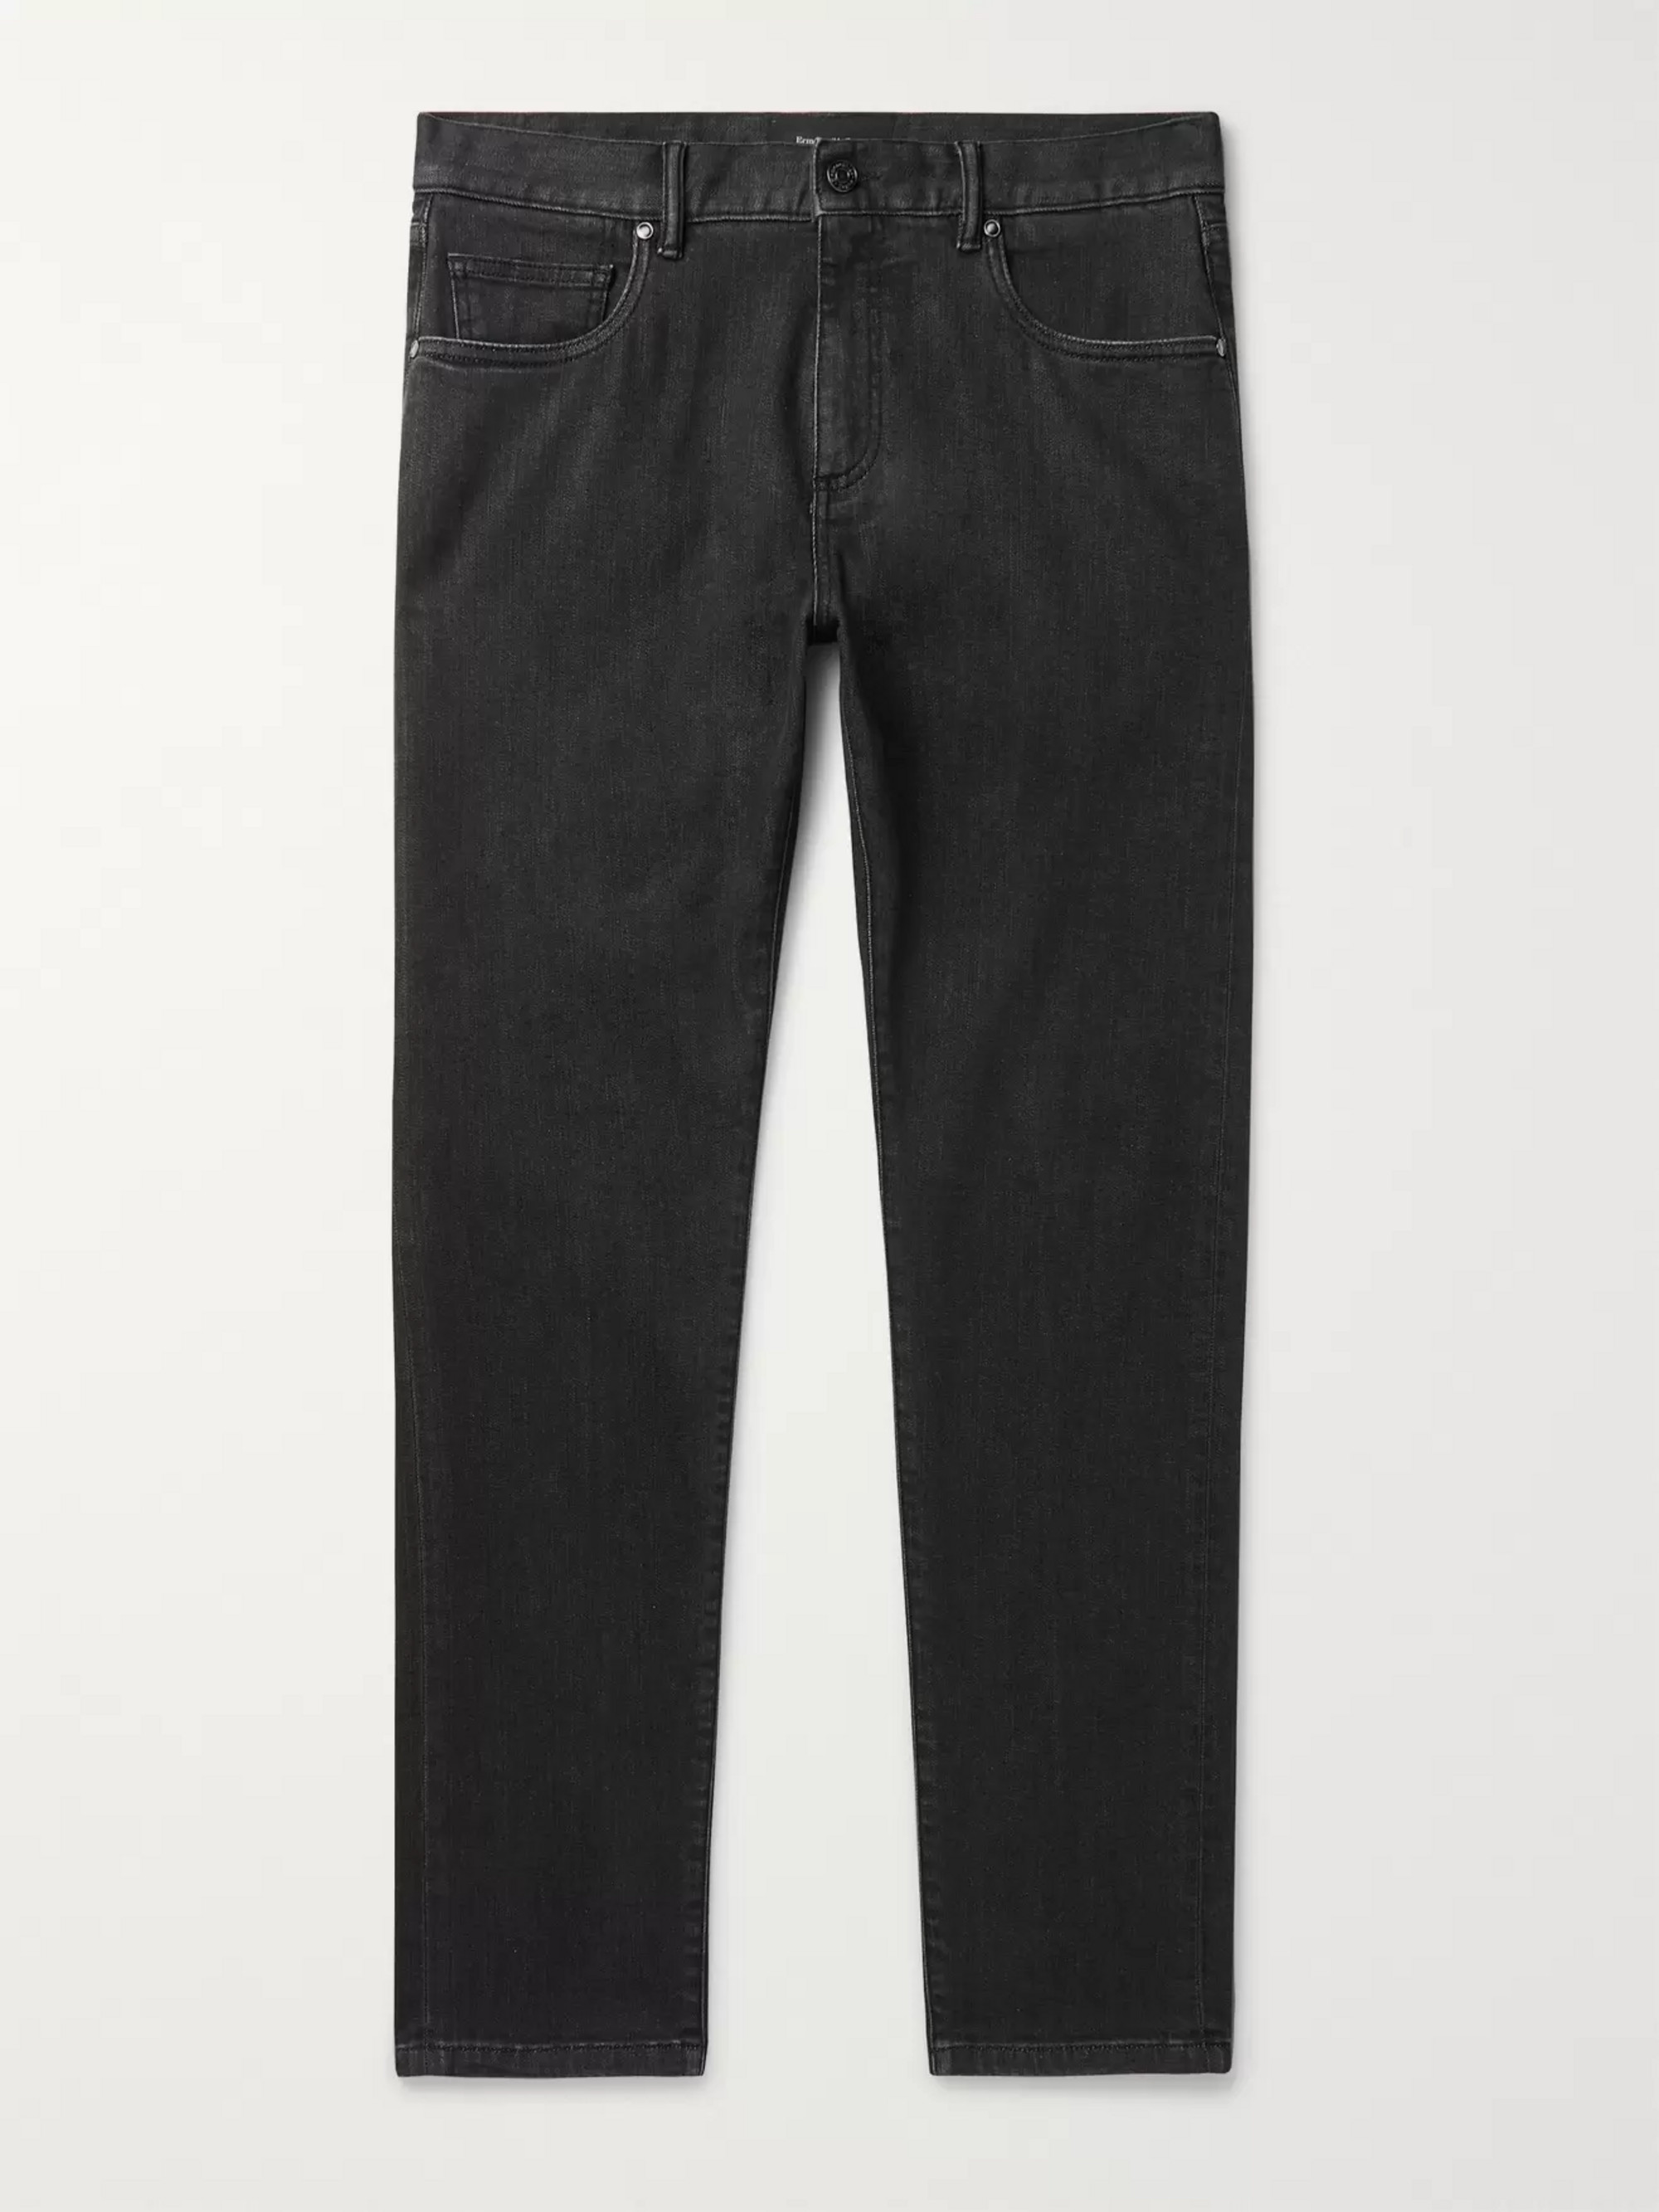 Ermenegildo Zegna Slim-Fit Stretch-Denim Jeans